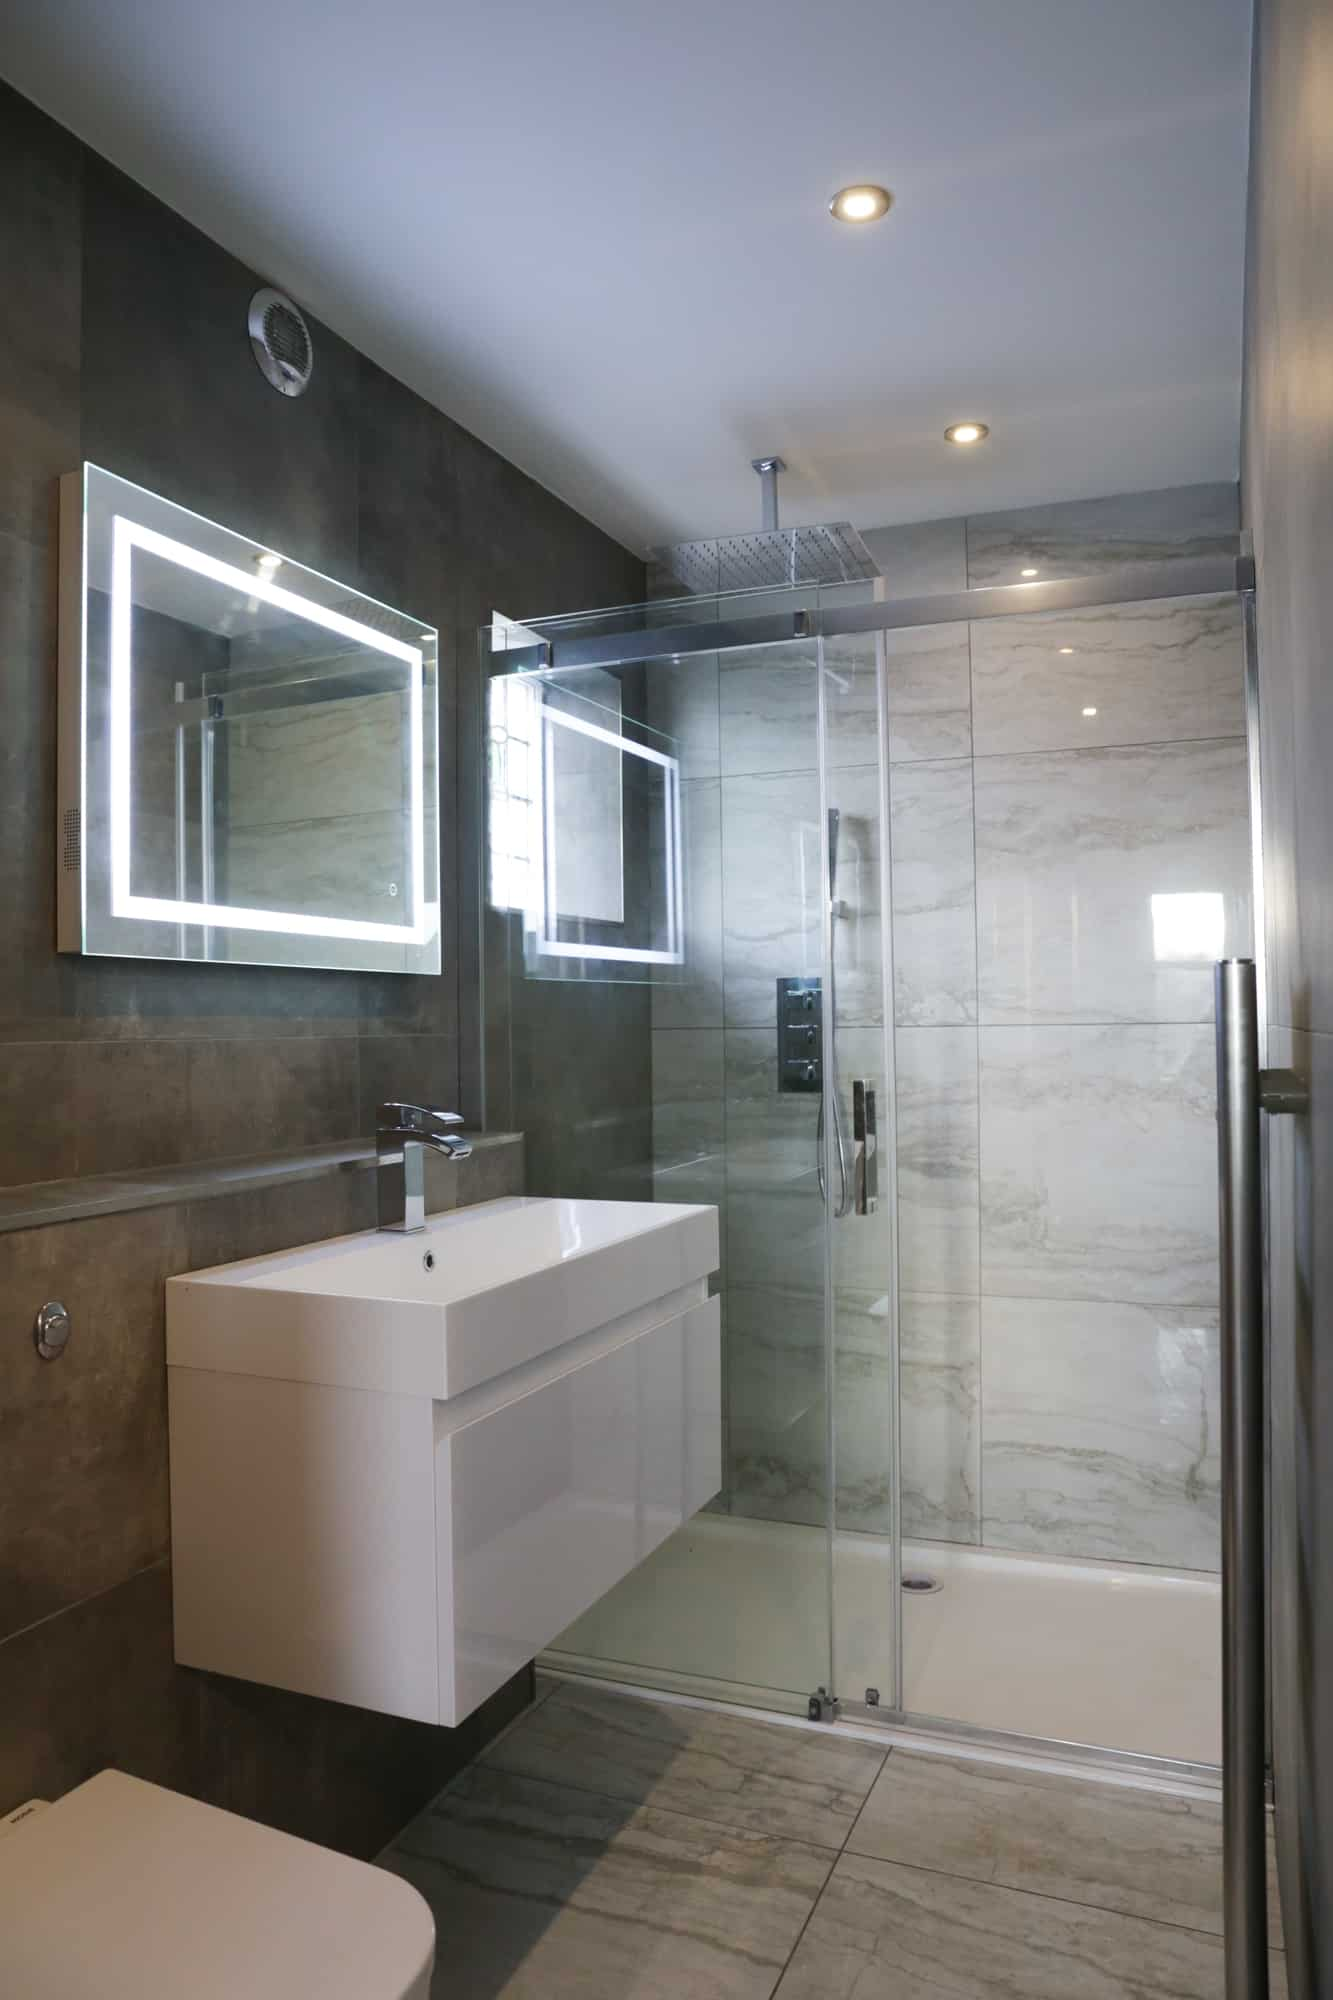 home bathroom renovation made by FIX LTD, trusted renovations contractor